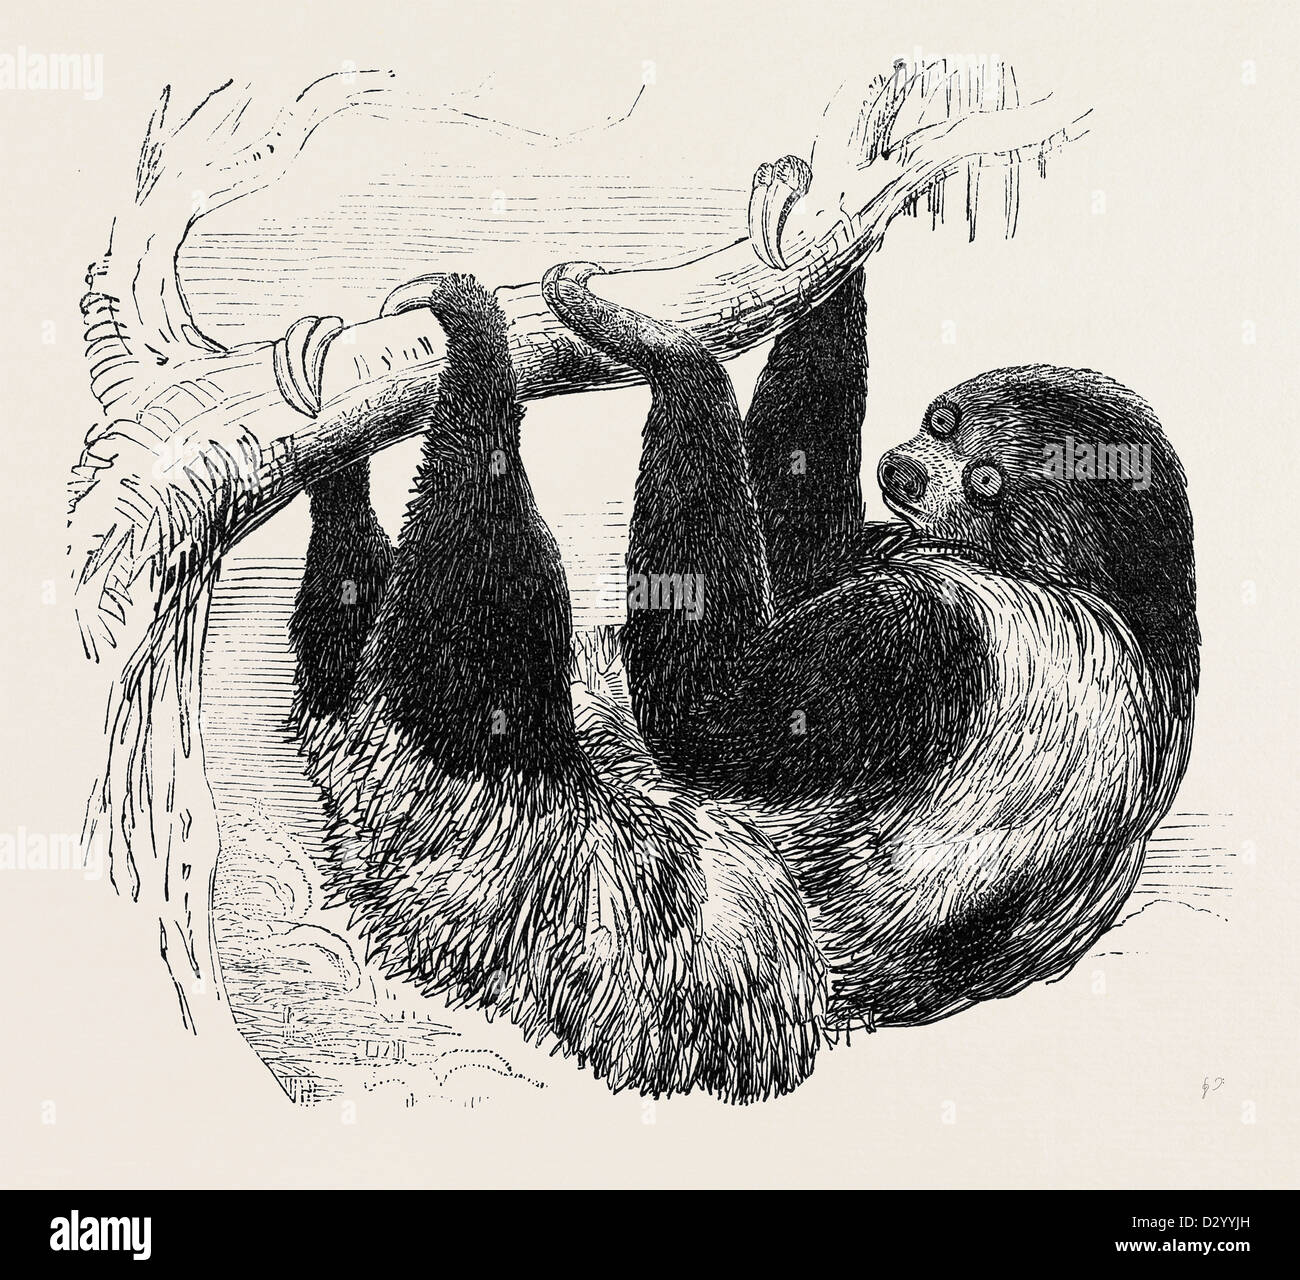 SLOTH AT THE ZOOLOGICAL GARDENS, REGENT'S PARK Stock Photo